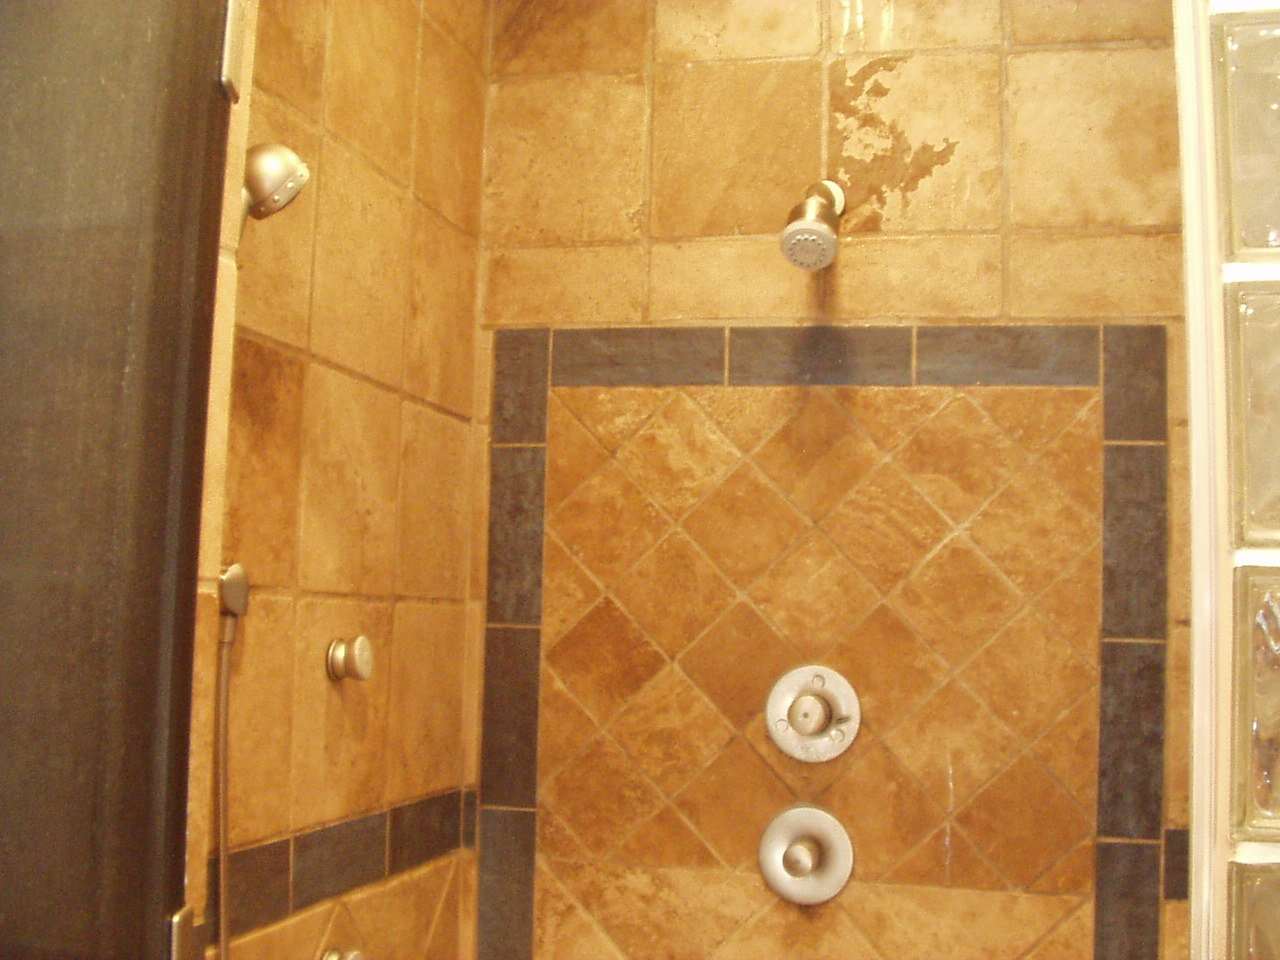 To get this tile bathroom remodel shower design ideas in full size